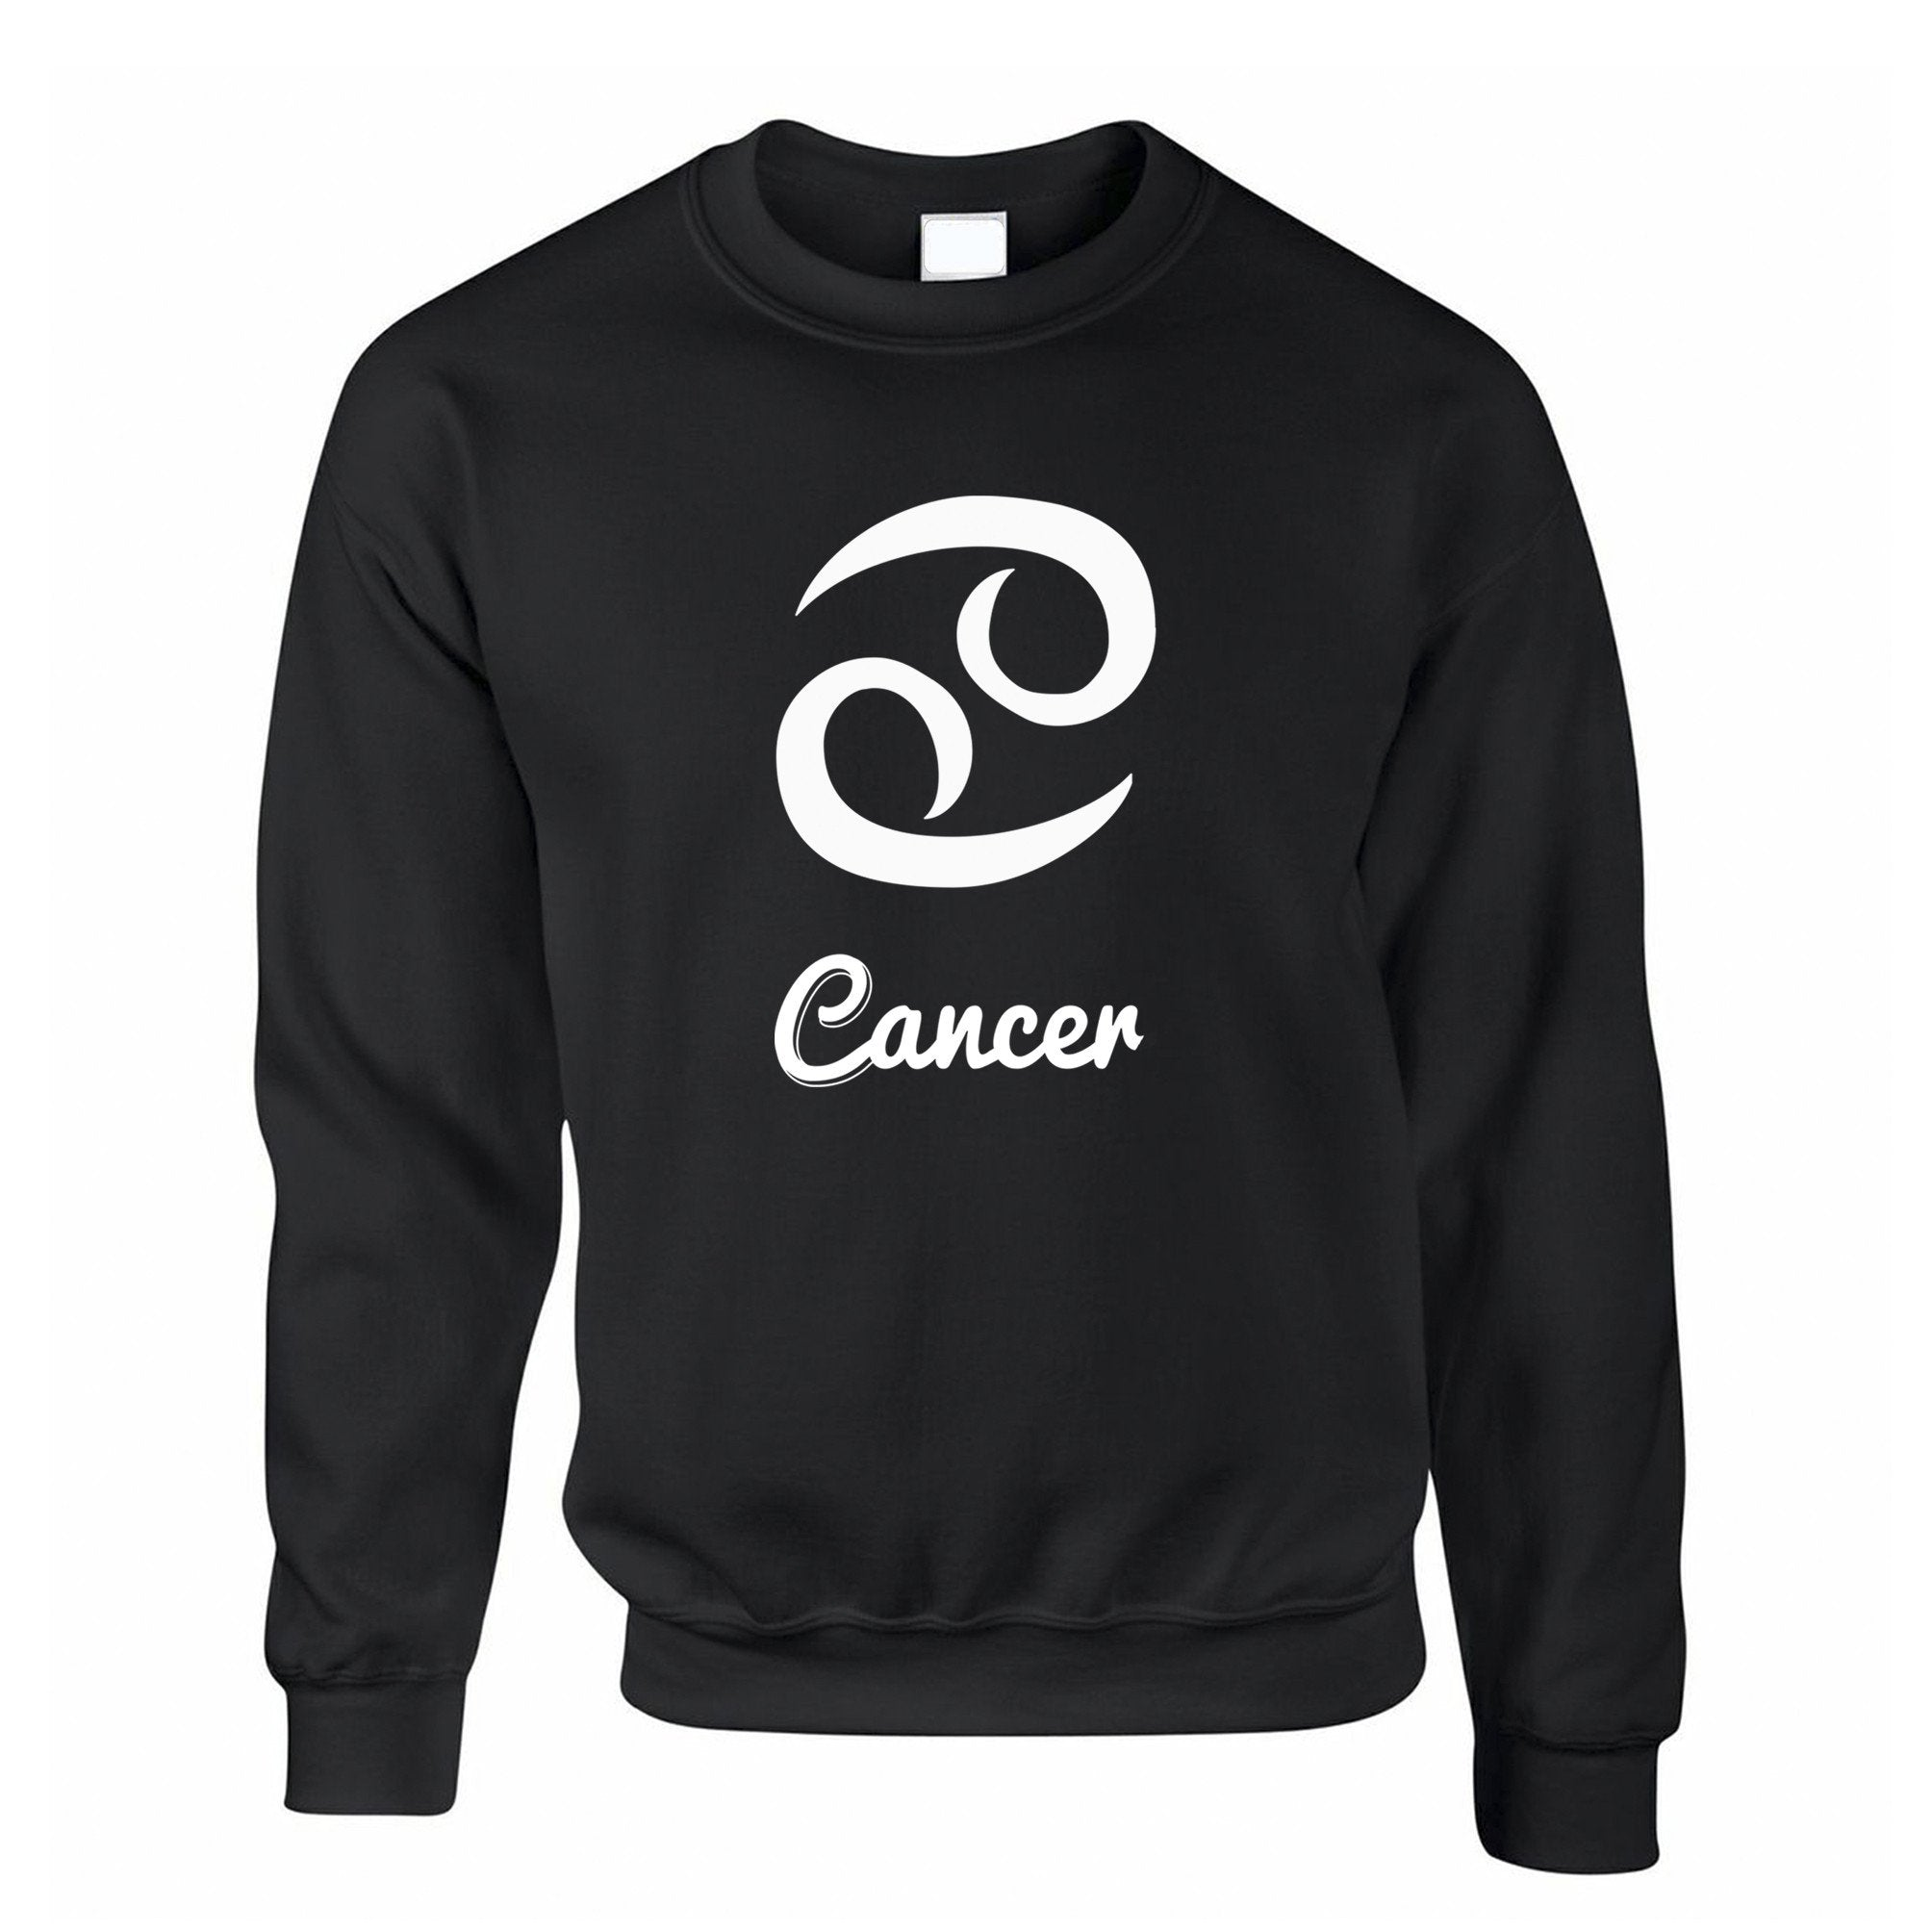 Horoscope Jumper Cancer Zodiac Star Sign Birthday Sweatshirt Sweater